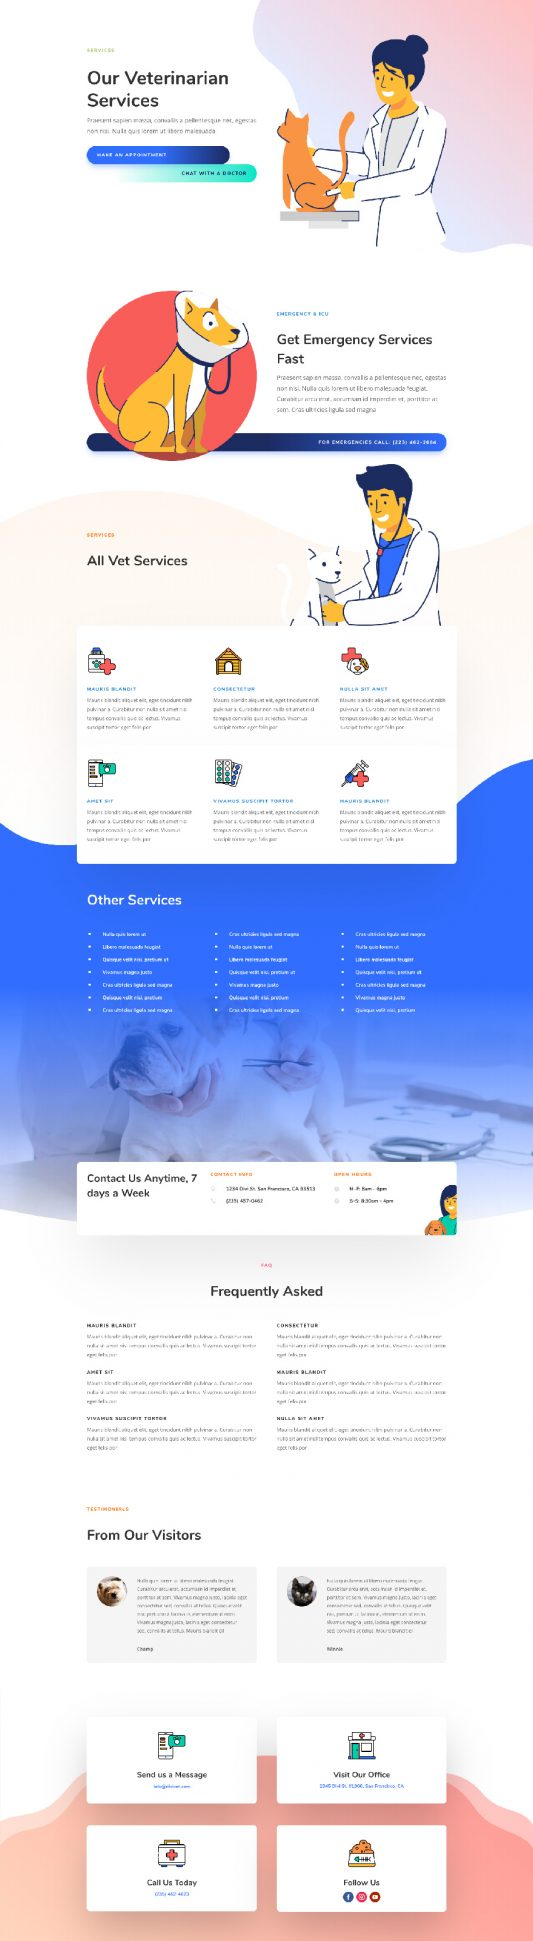 Veterinarian Services Page Style